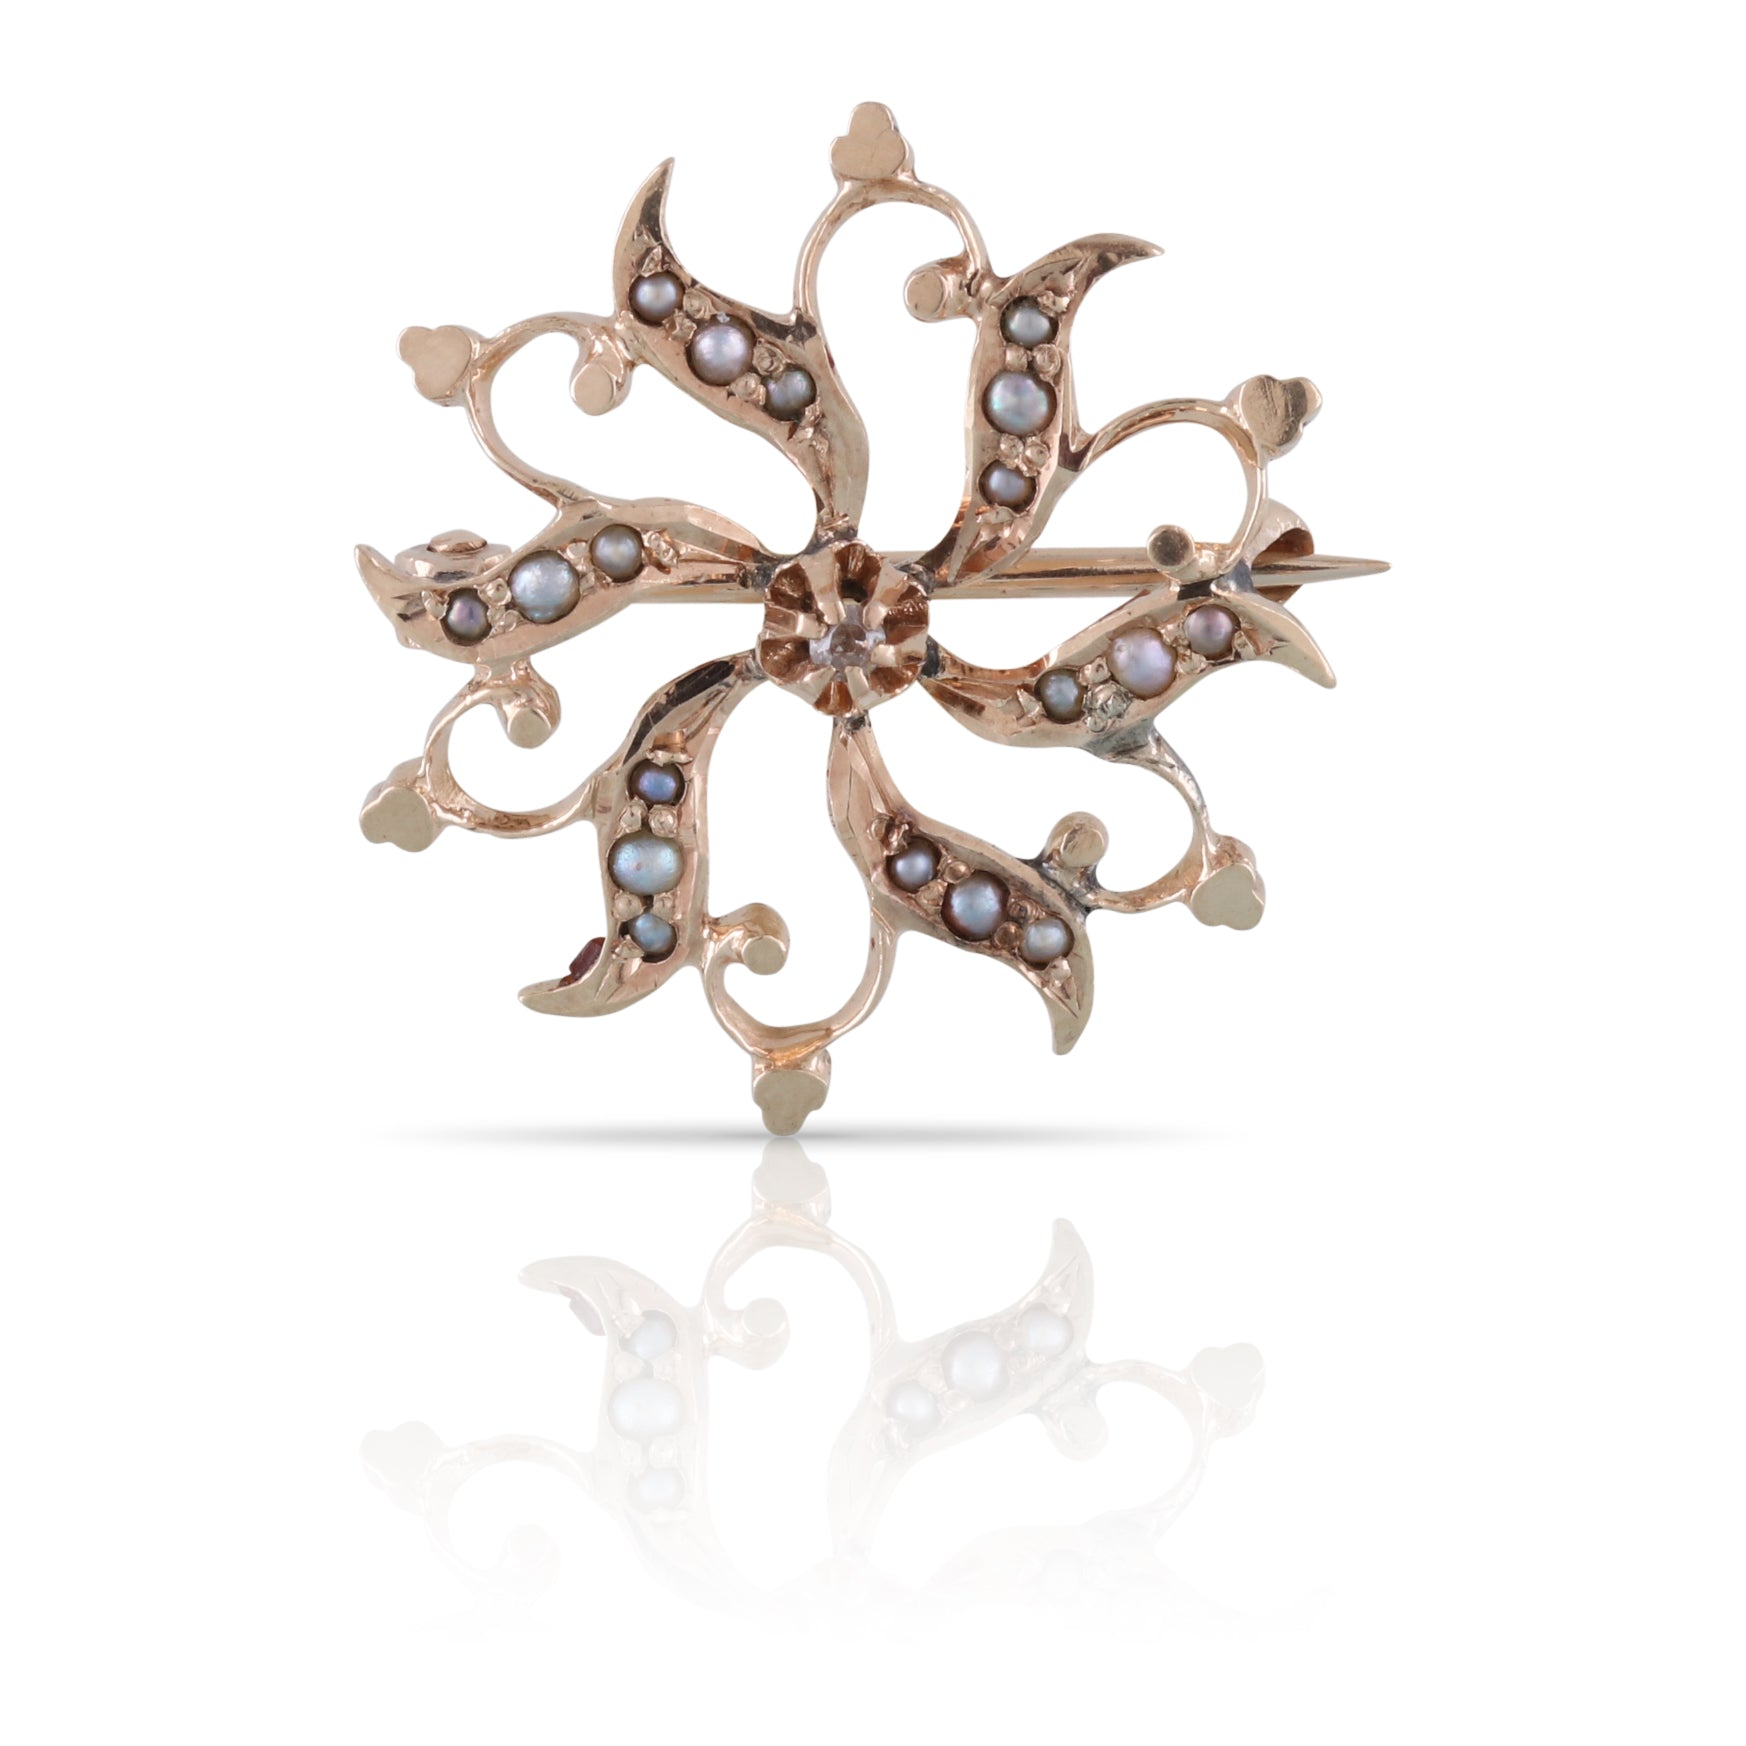 Victorian Era Diamond and Seed Pearl Brooch | The Valentina